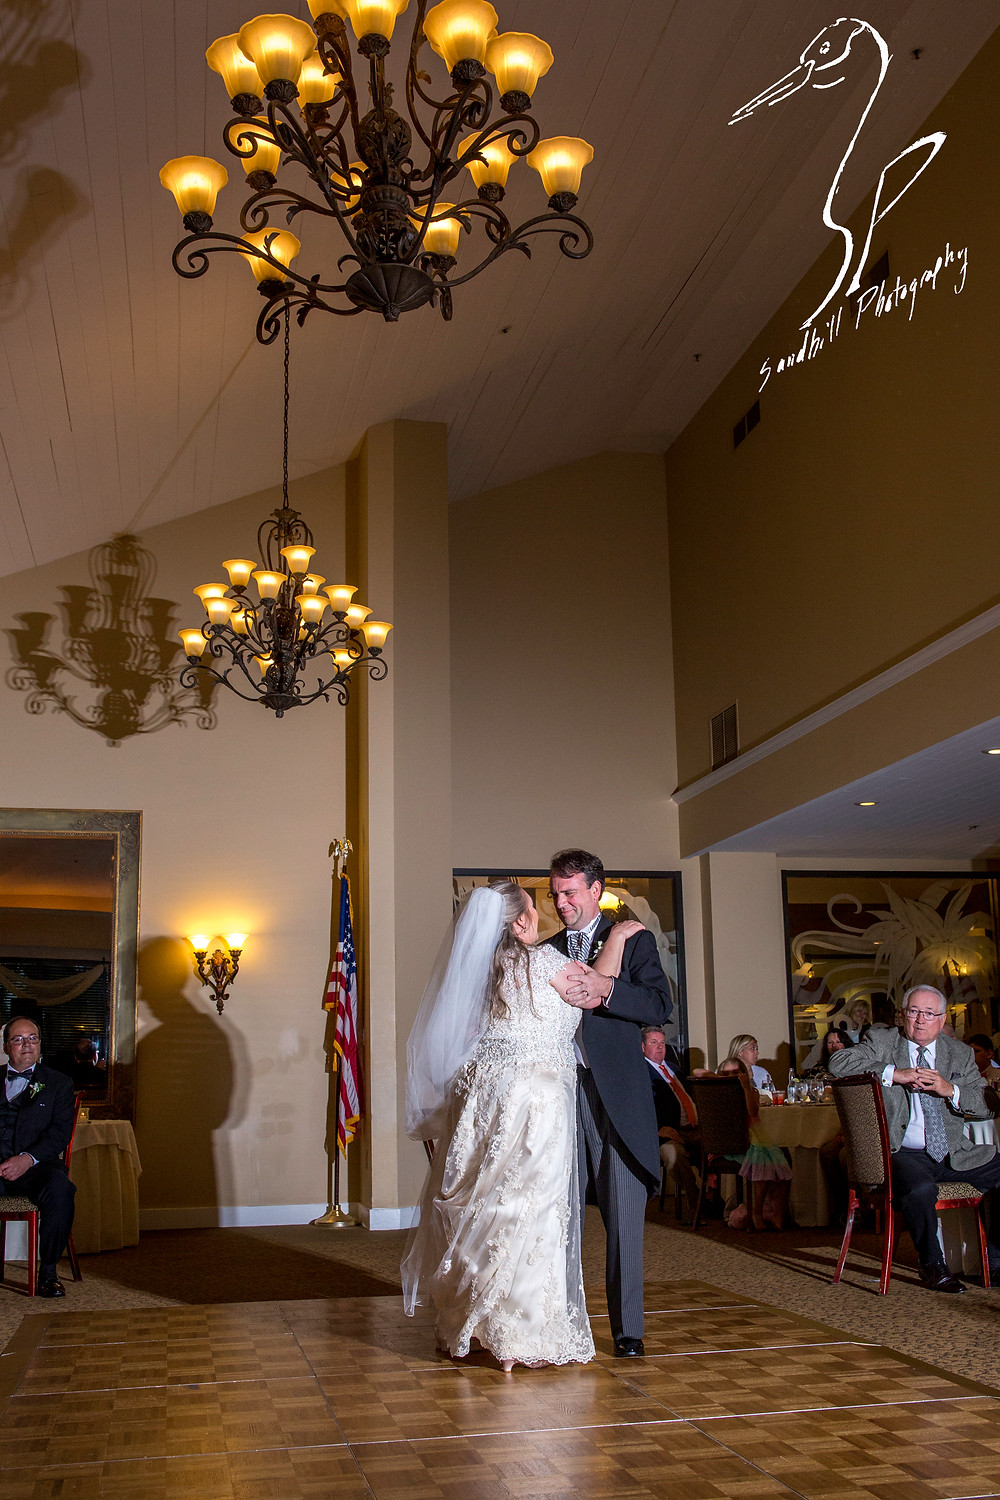 Rainy Day Wedding Photography Sarasota, First dance with bride and groom on the dance floor under chandeliers